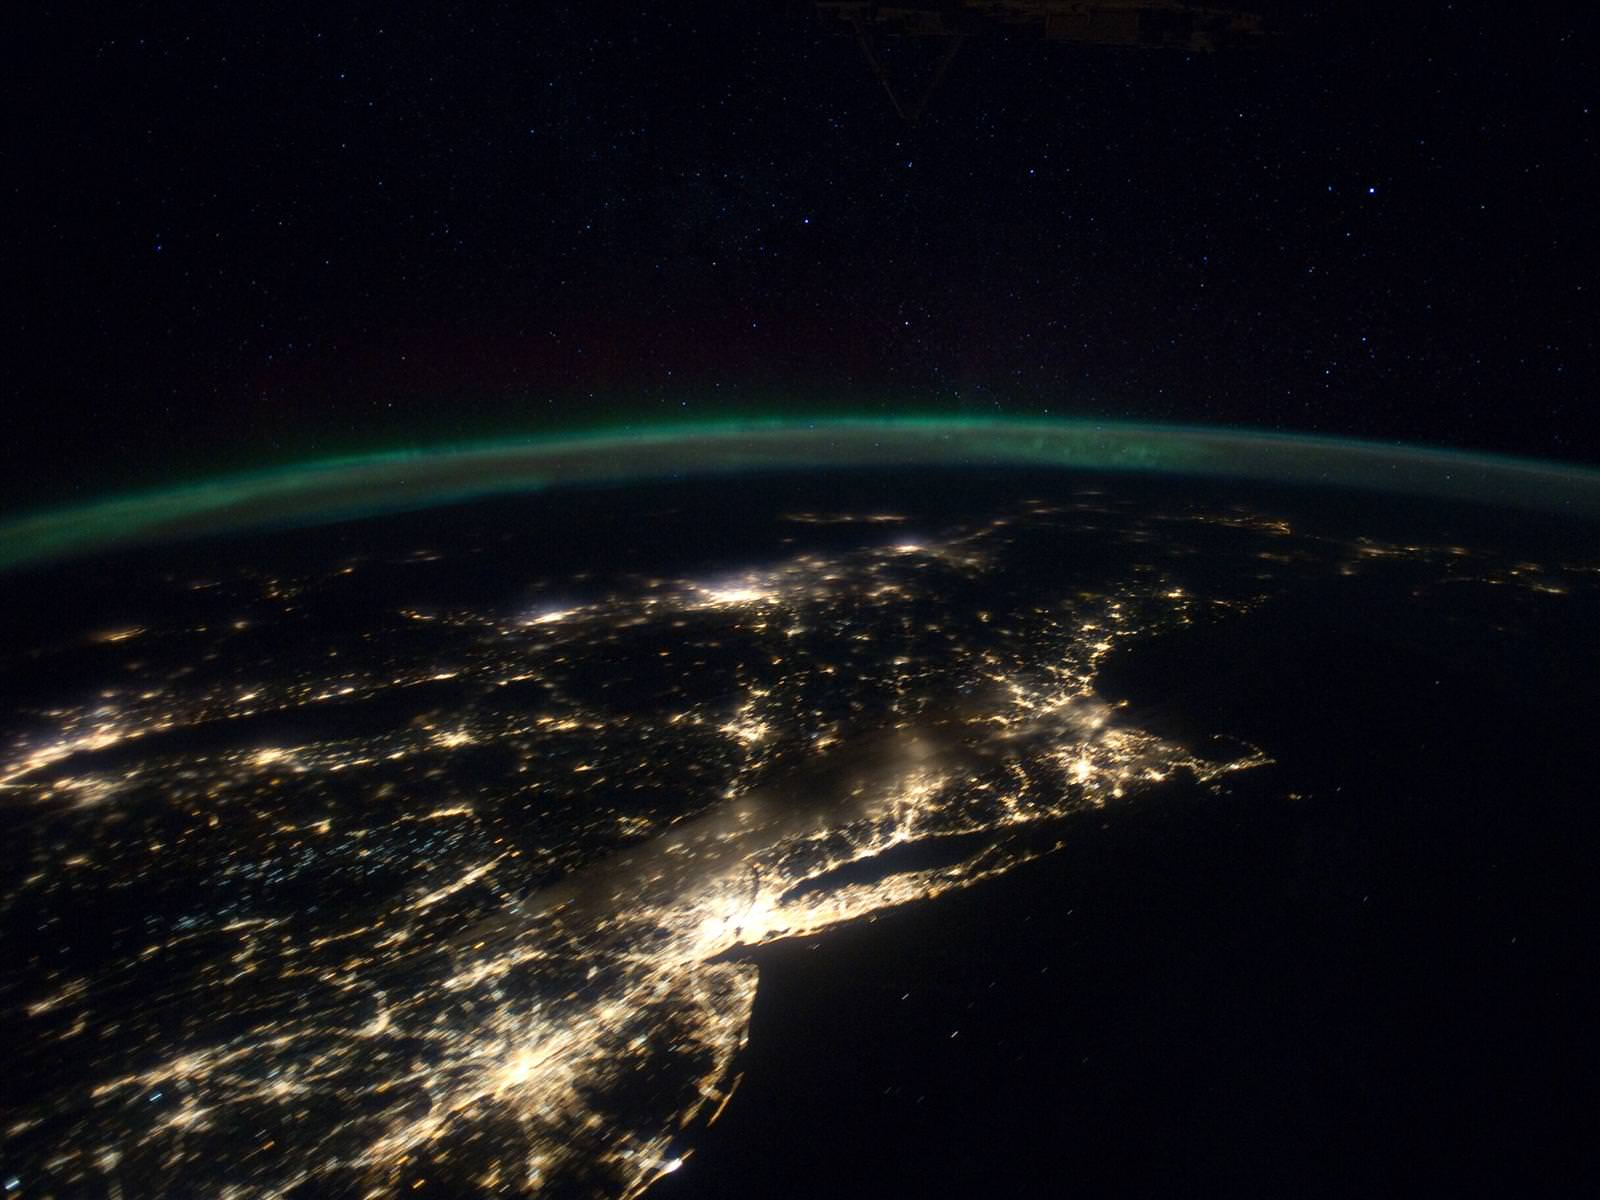 Cities at night panorama of millions of us east coast earthlings astronauts aboard the international space station iss captured this stunning nighttime panorama of the major cities along the east coast of the united voltagebd Image collections